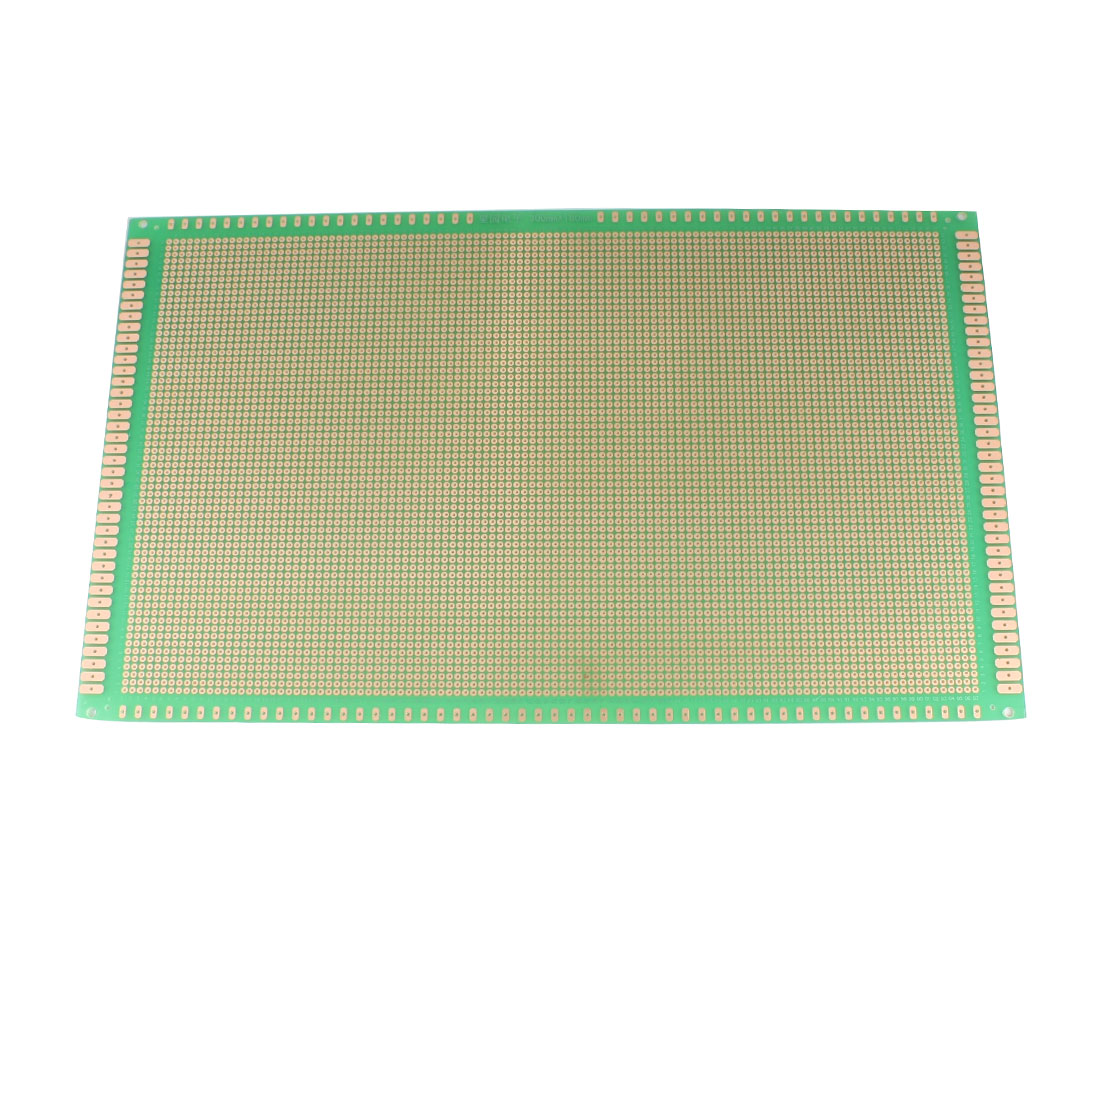 Prototyping Single Side PCB Board Stripboard Green 300x180mm